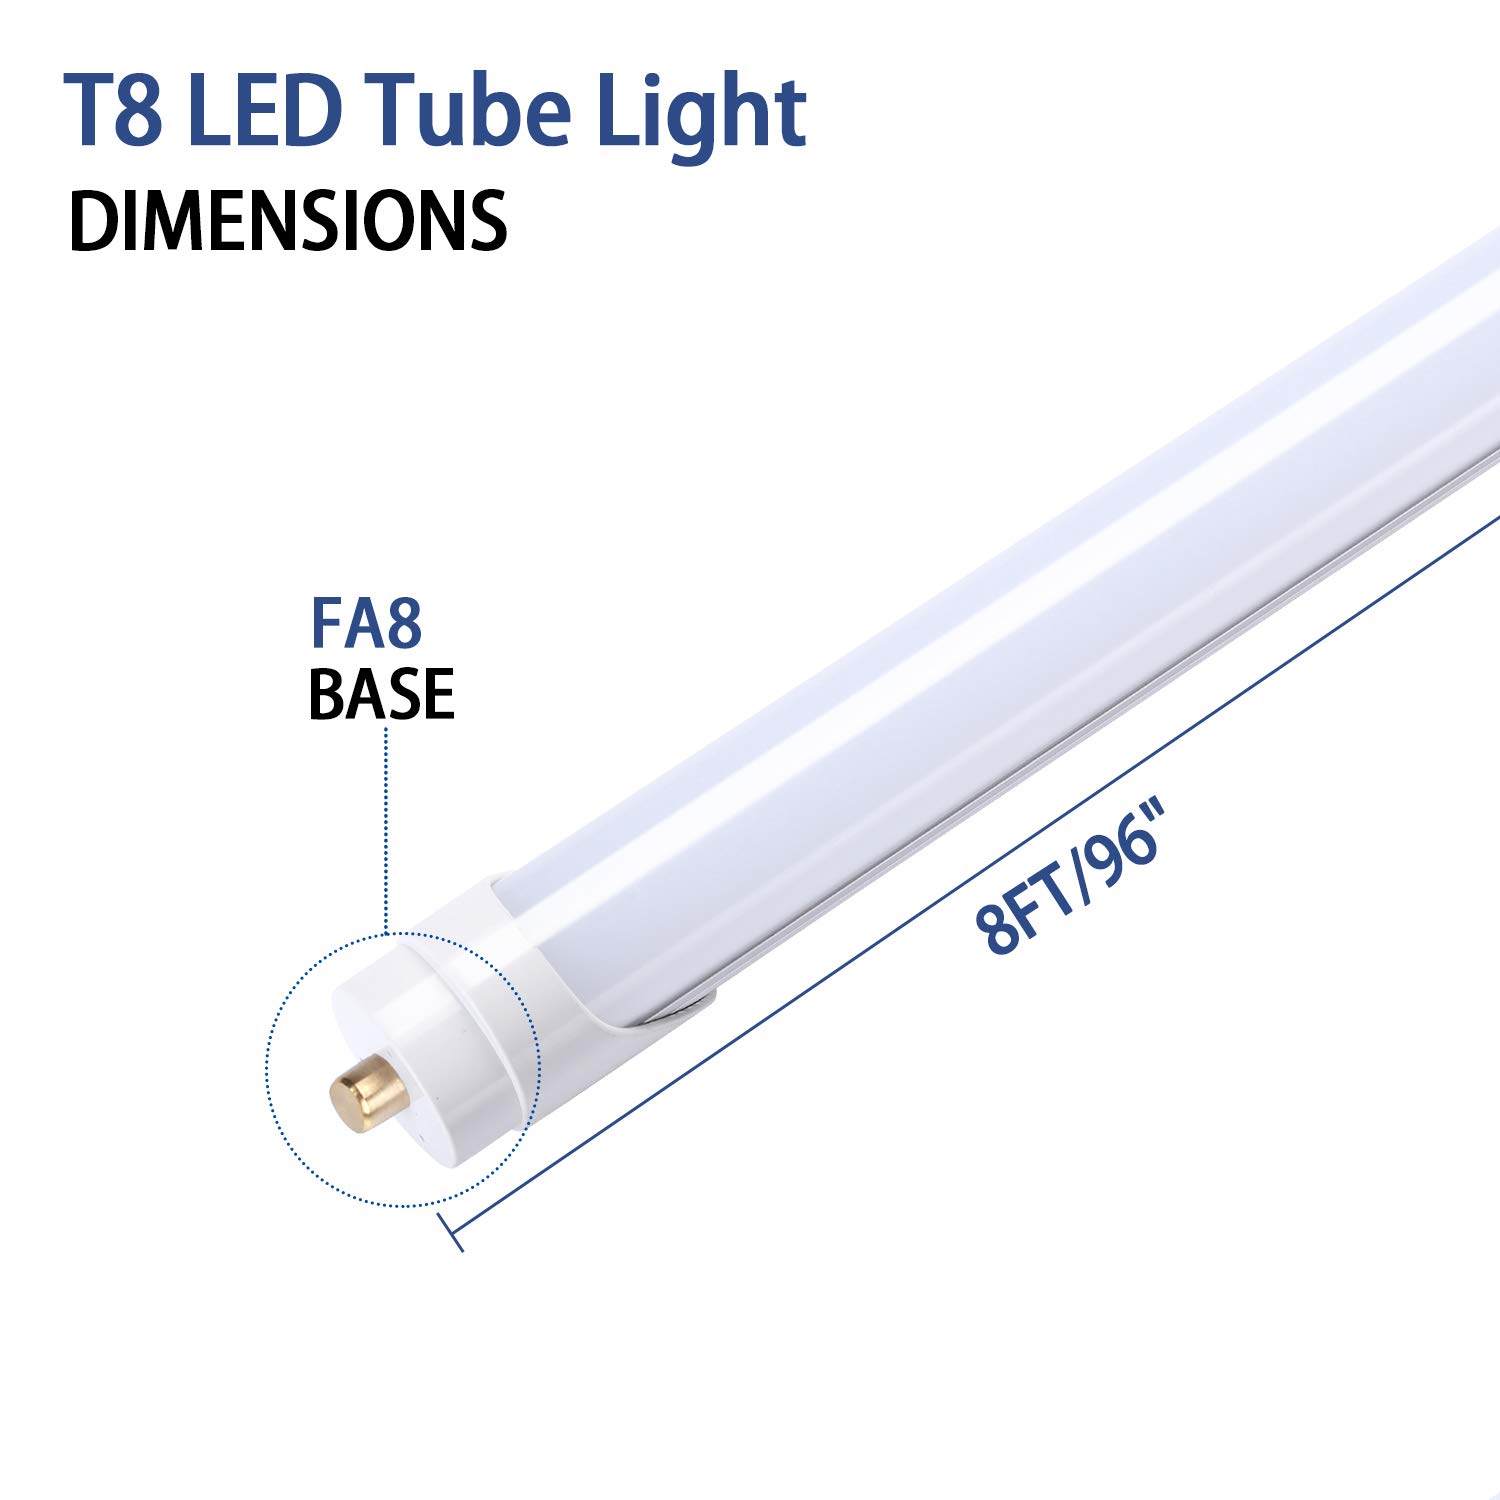 Fluorescent Light Bulbs Replacement TRLIFE 8FT LED Tube Light Dual-End Powered T8 8FT LED Bulbs 45W 5000K Daylight White FA8 Base LED Tube Lights 5400Lumens 12Pack Frosted Cover